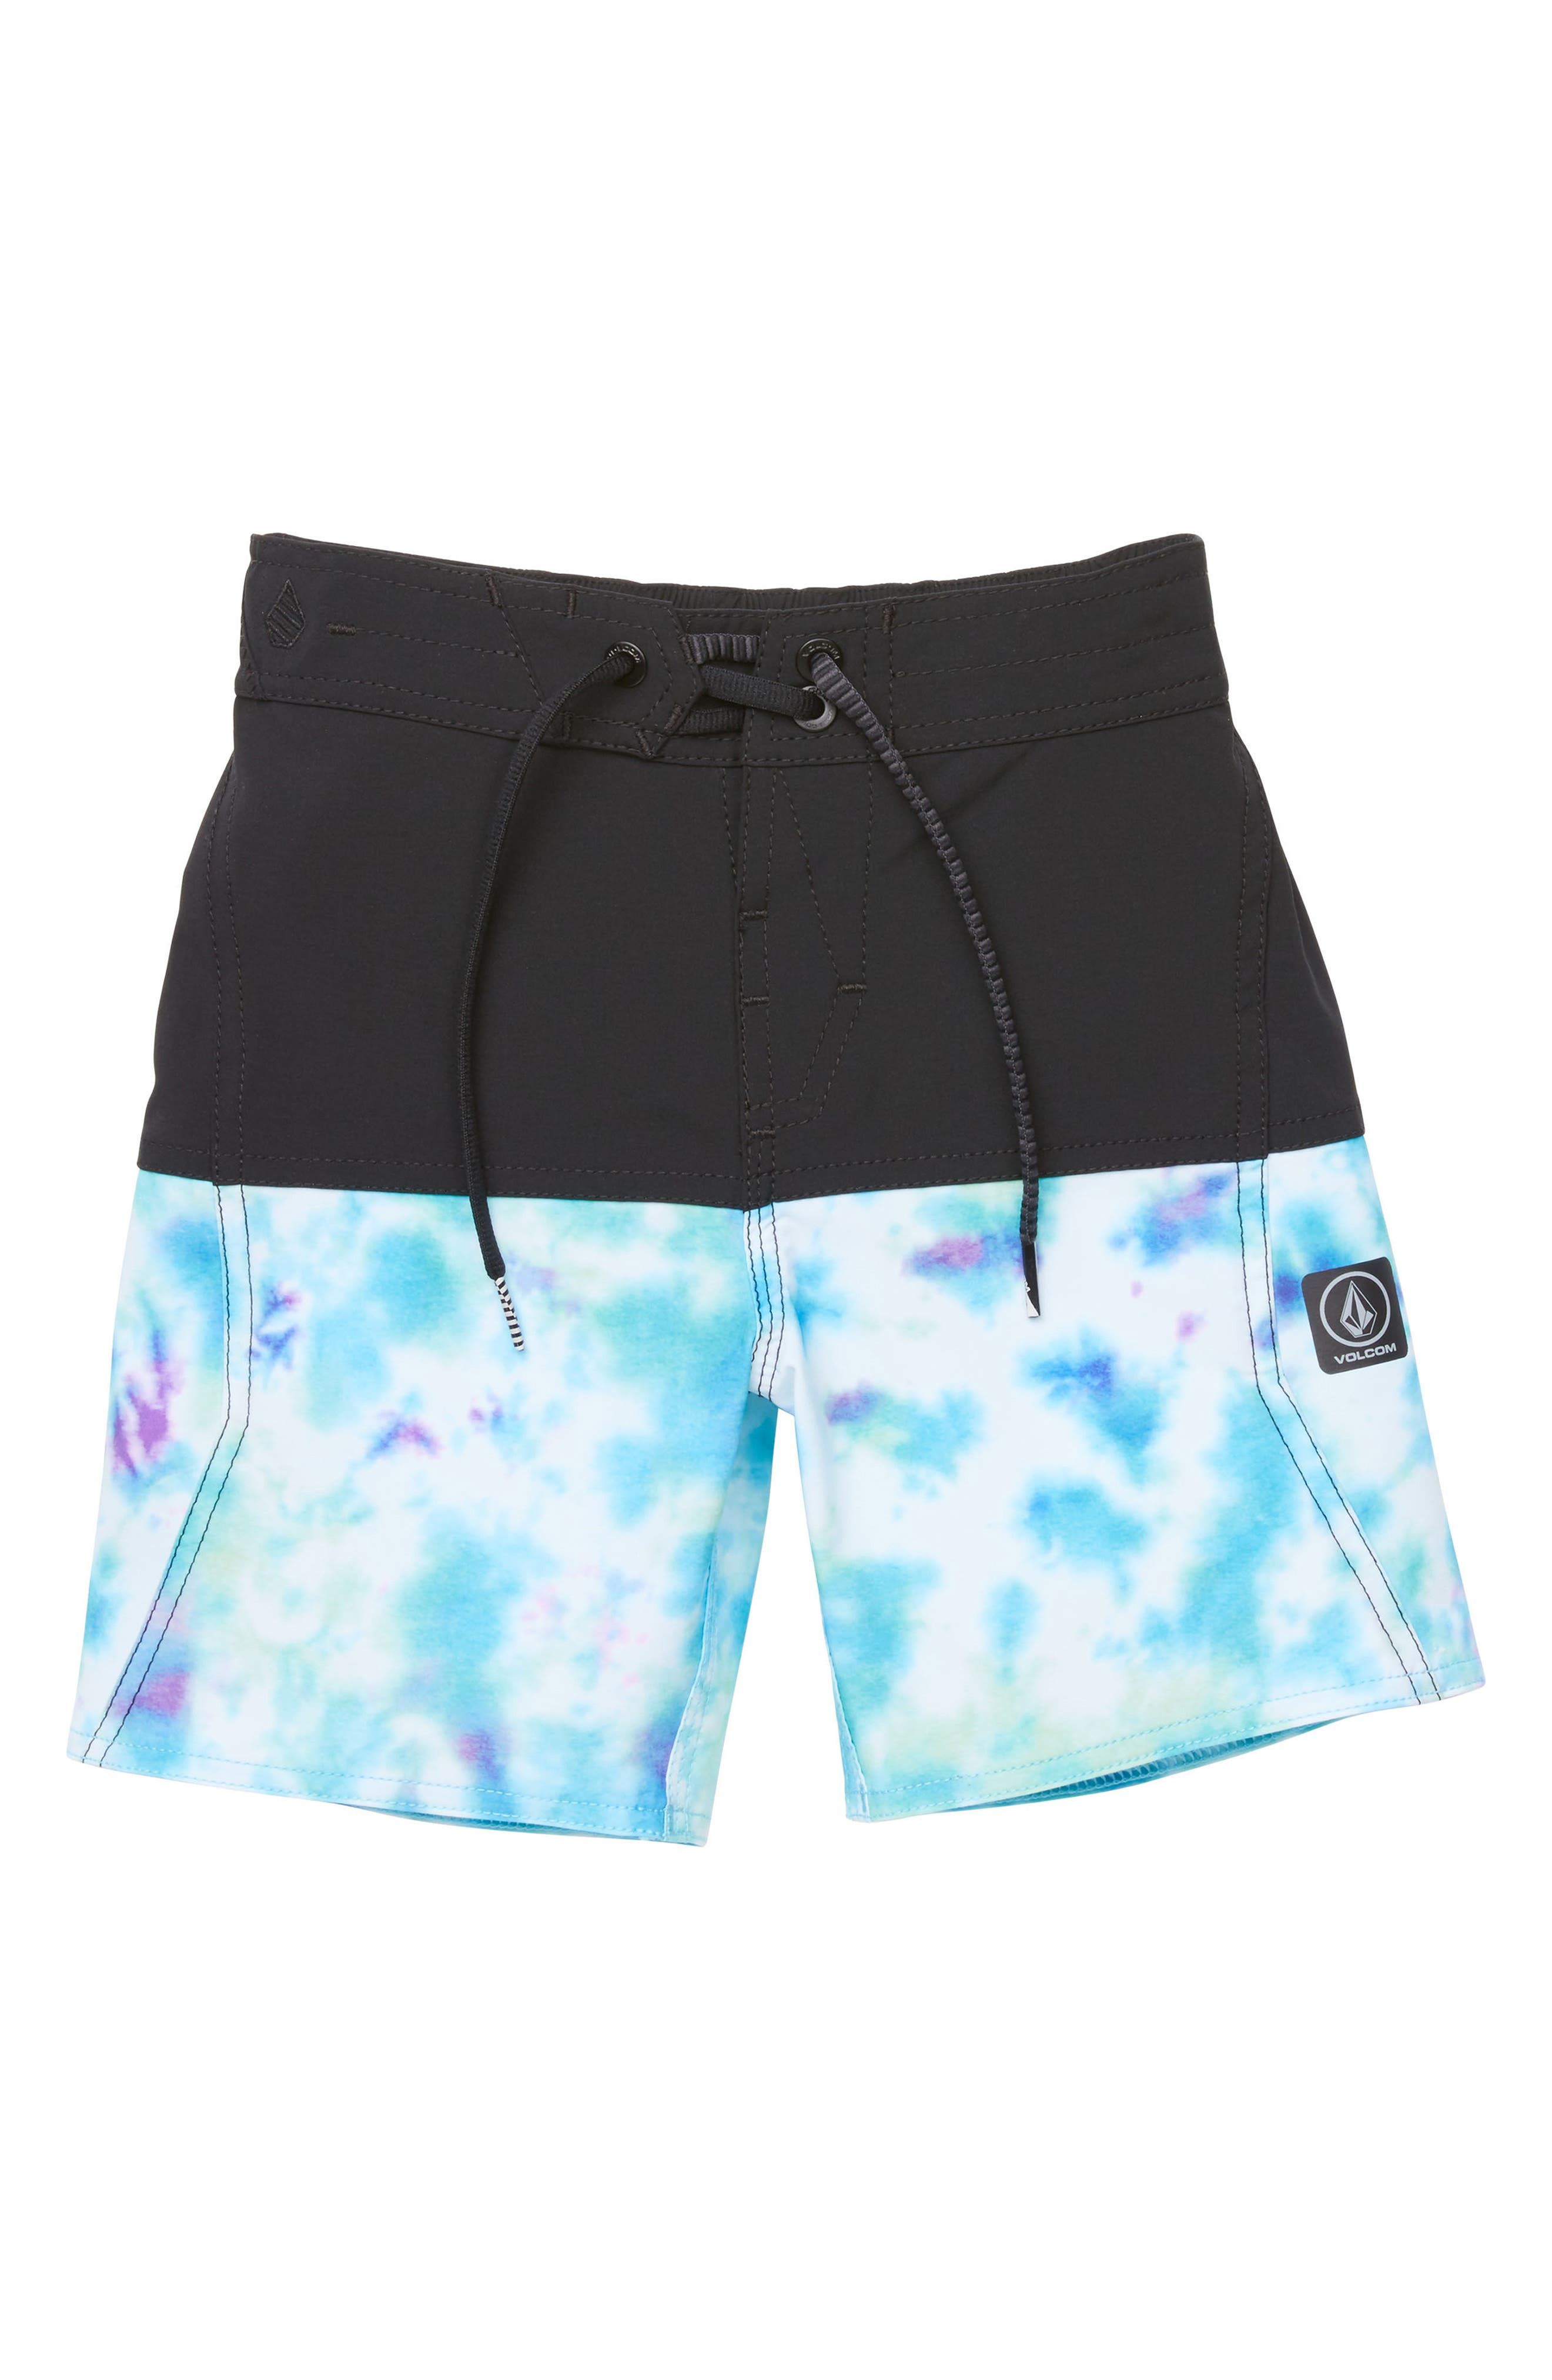 Vibes Board Shorts,                         Main,                         color, Black Combo